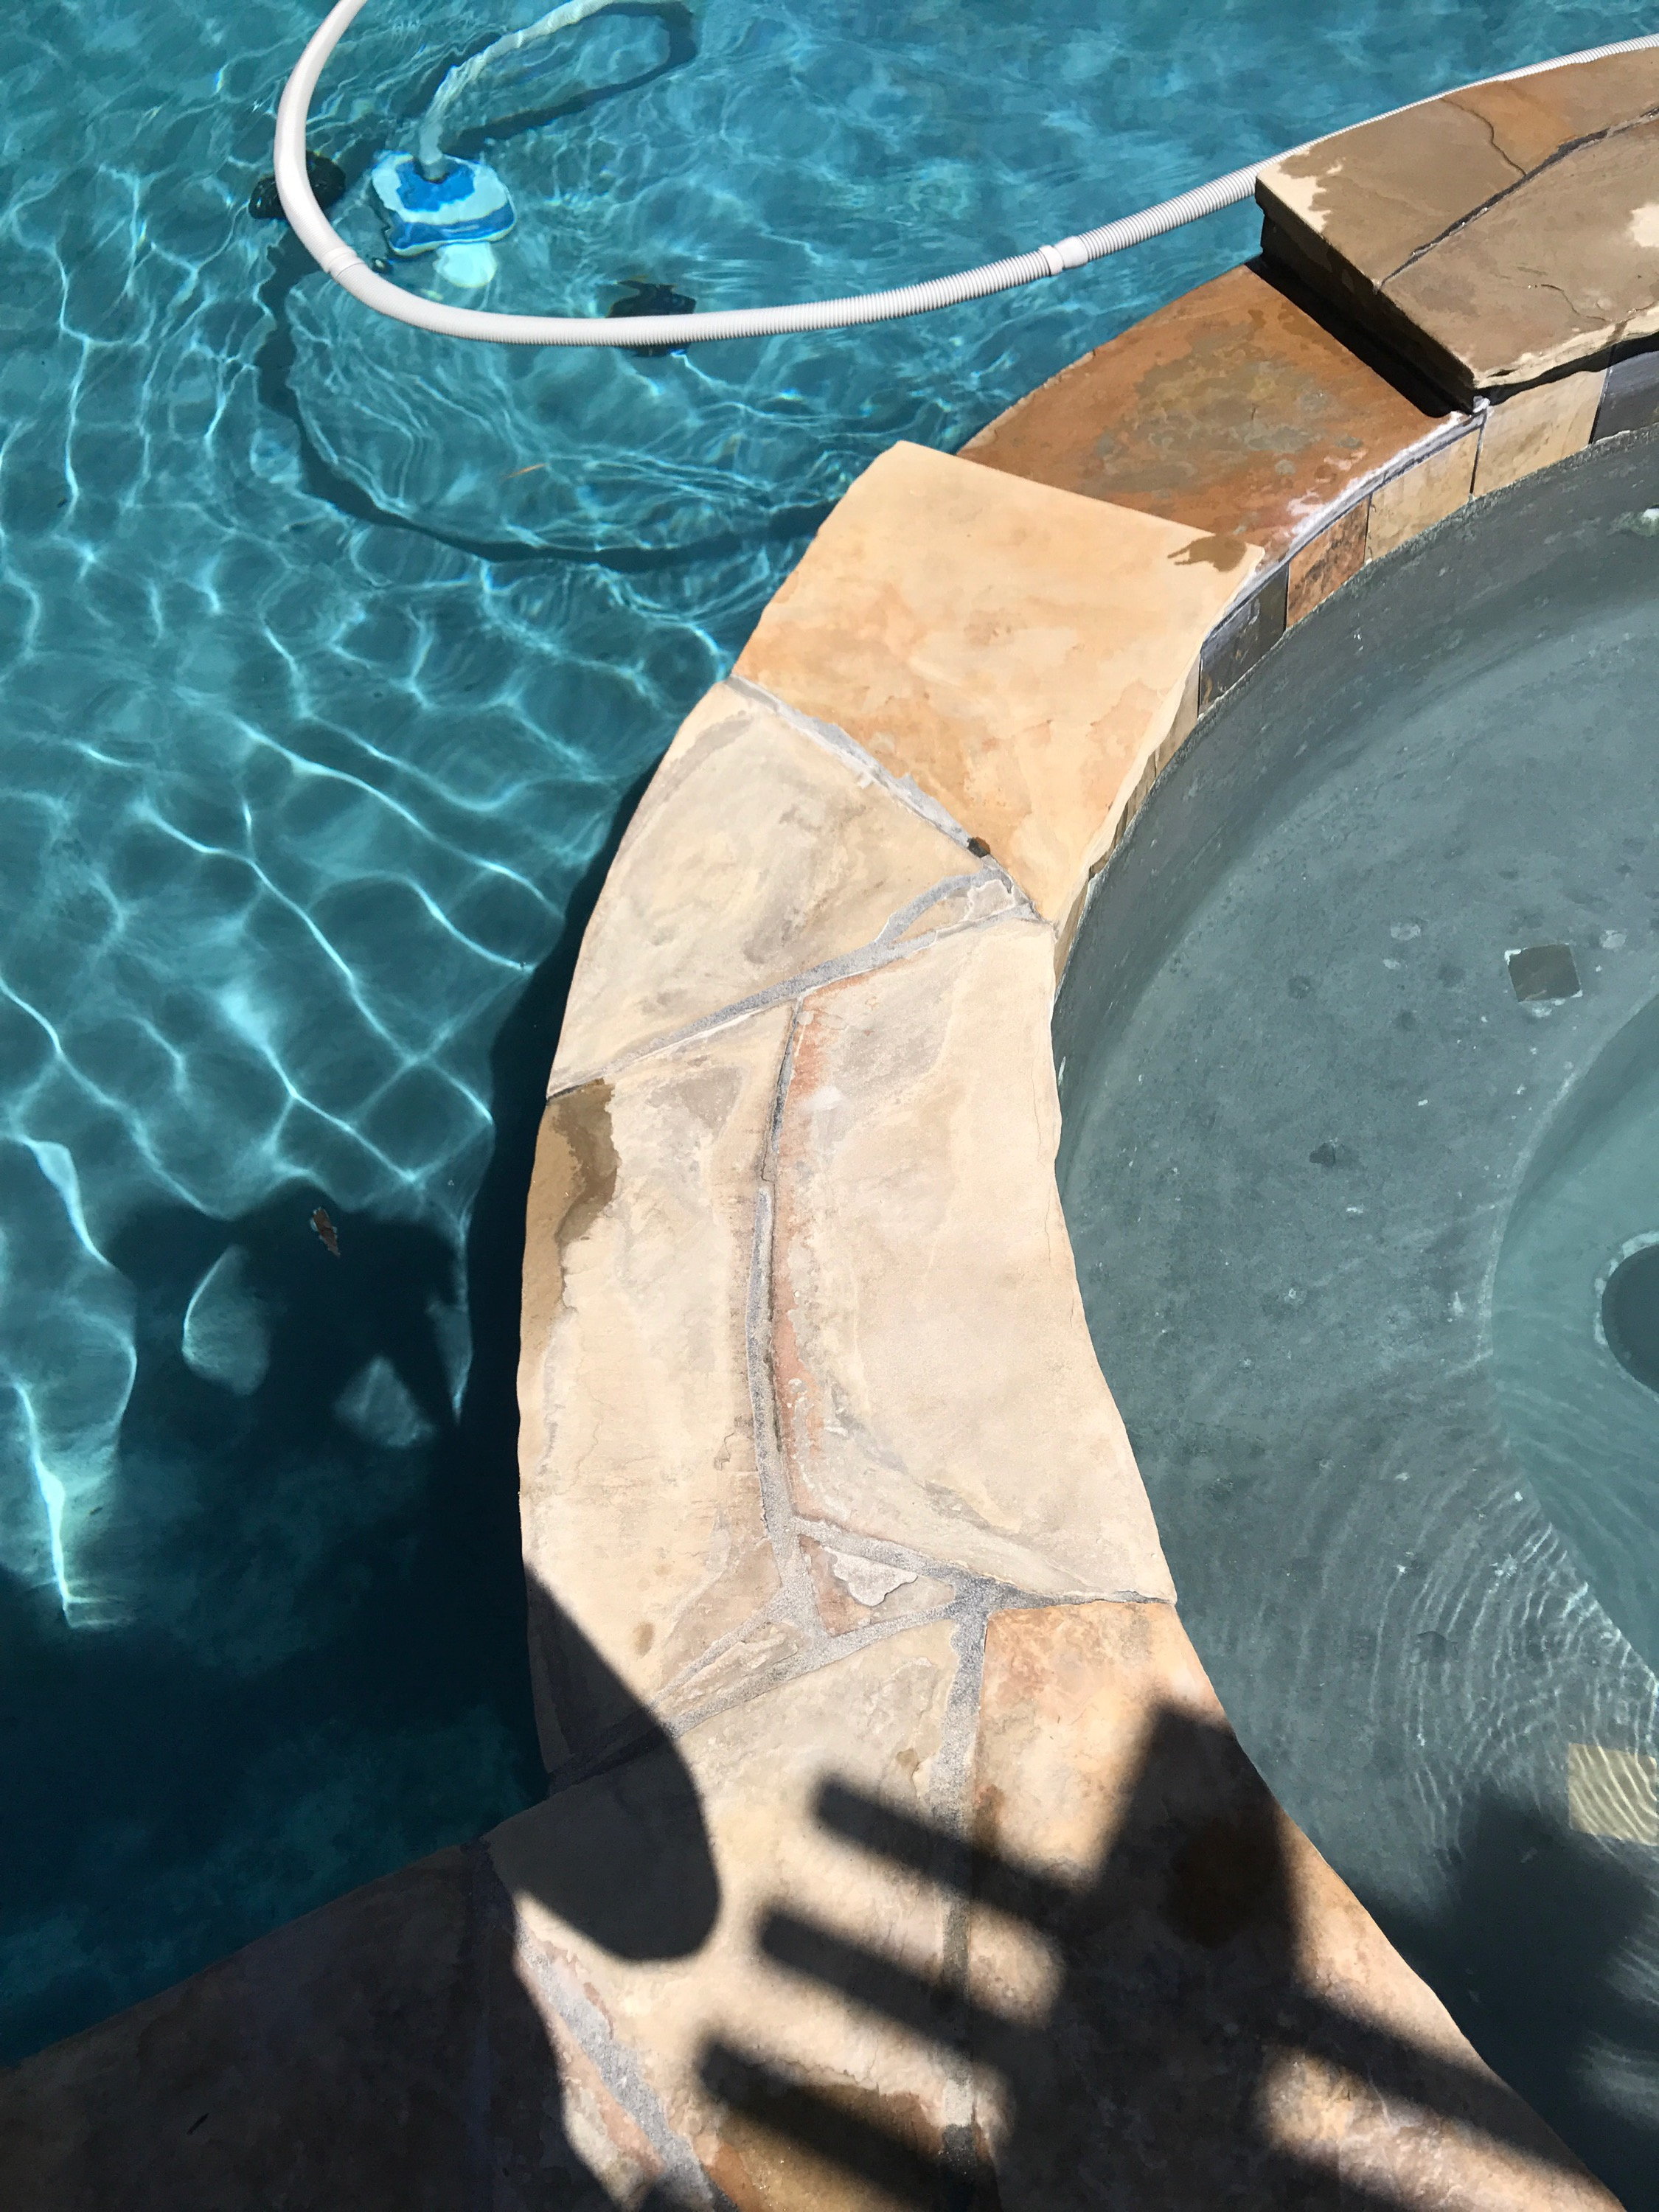 Flagstone pool repair